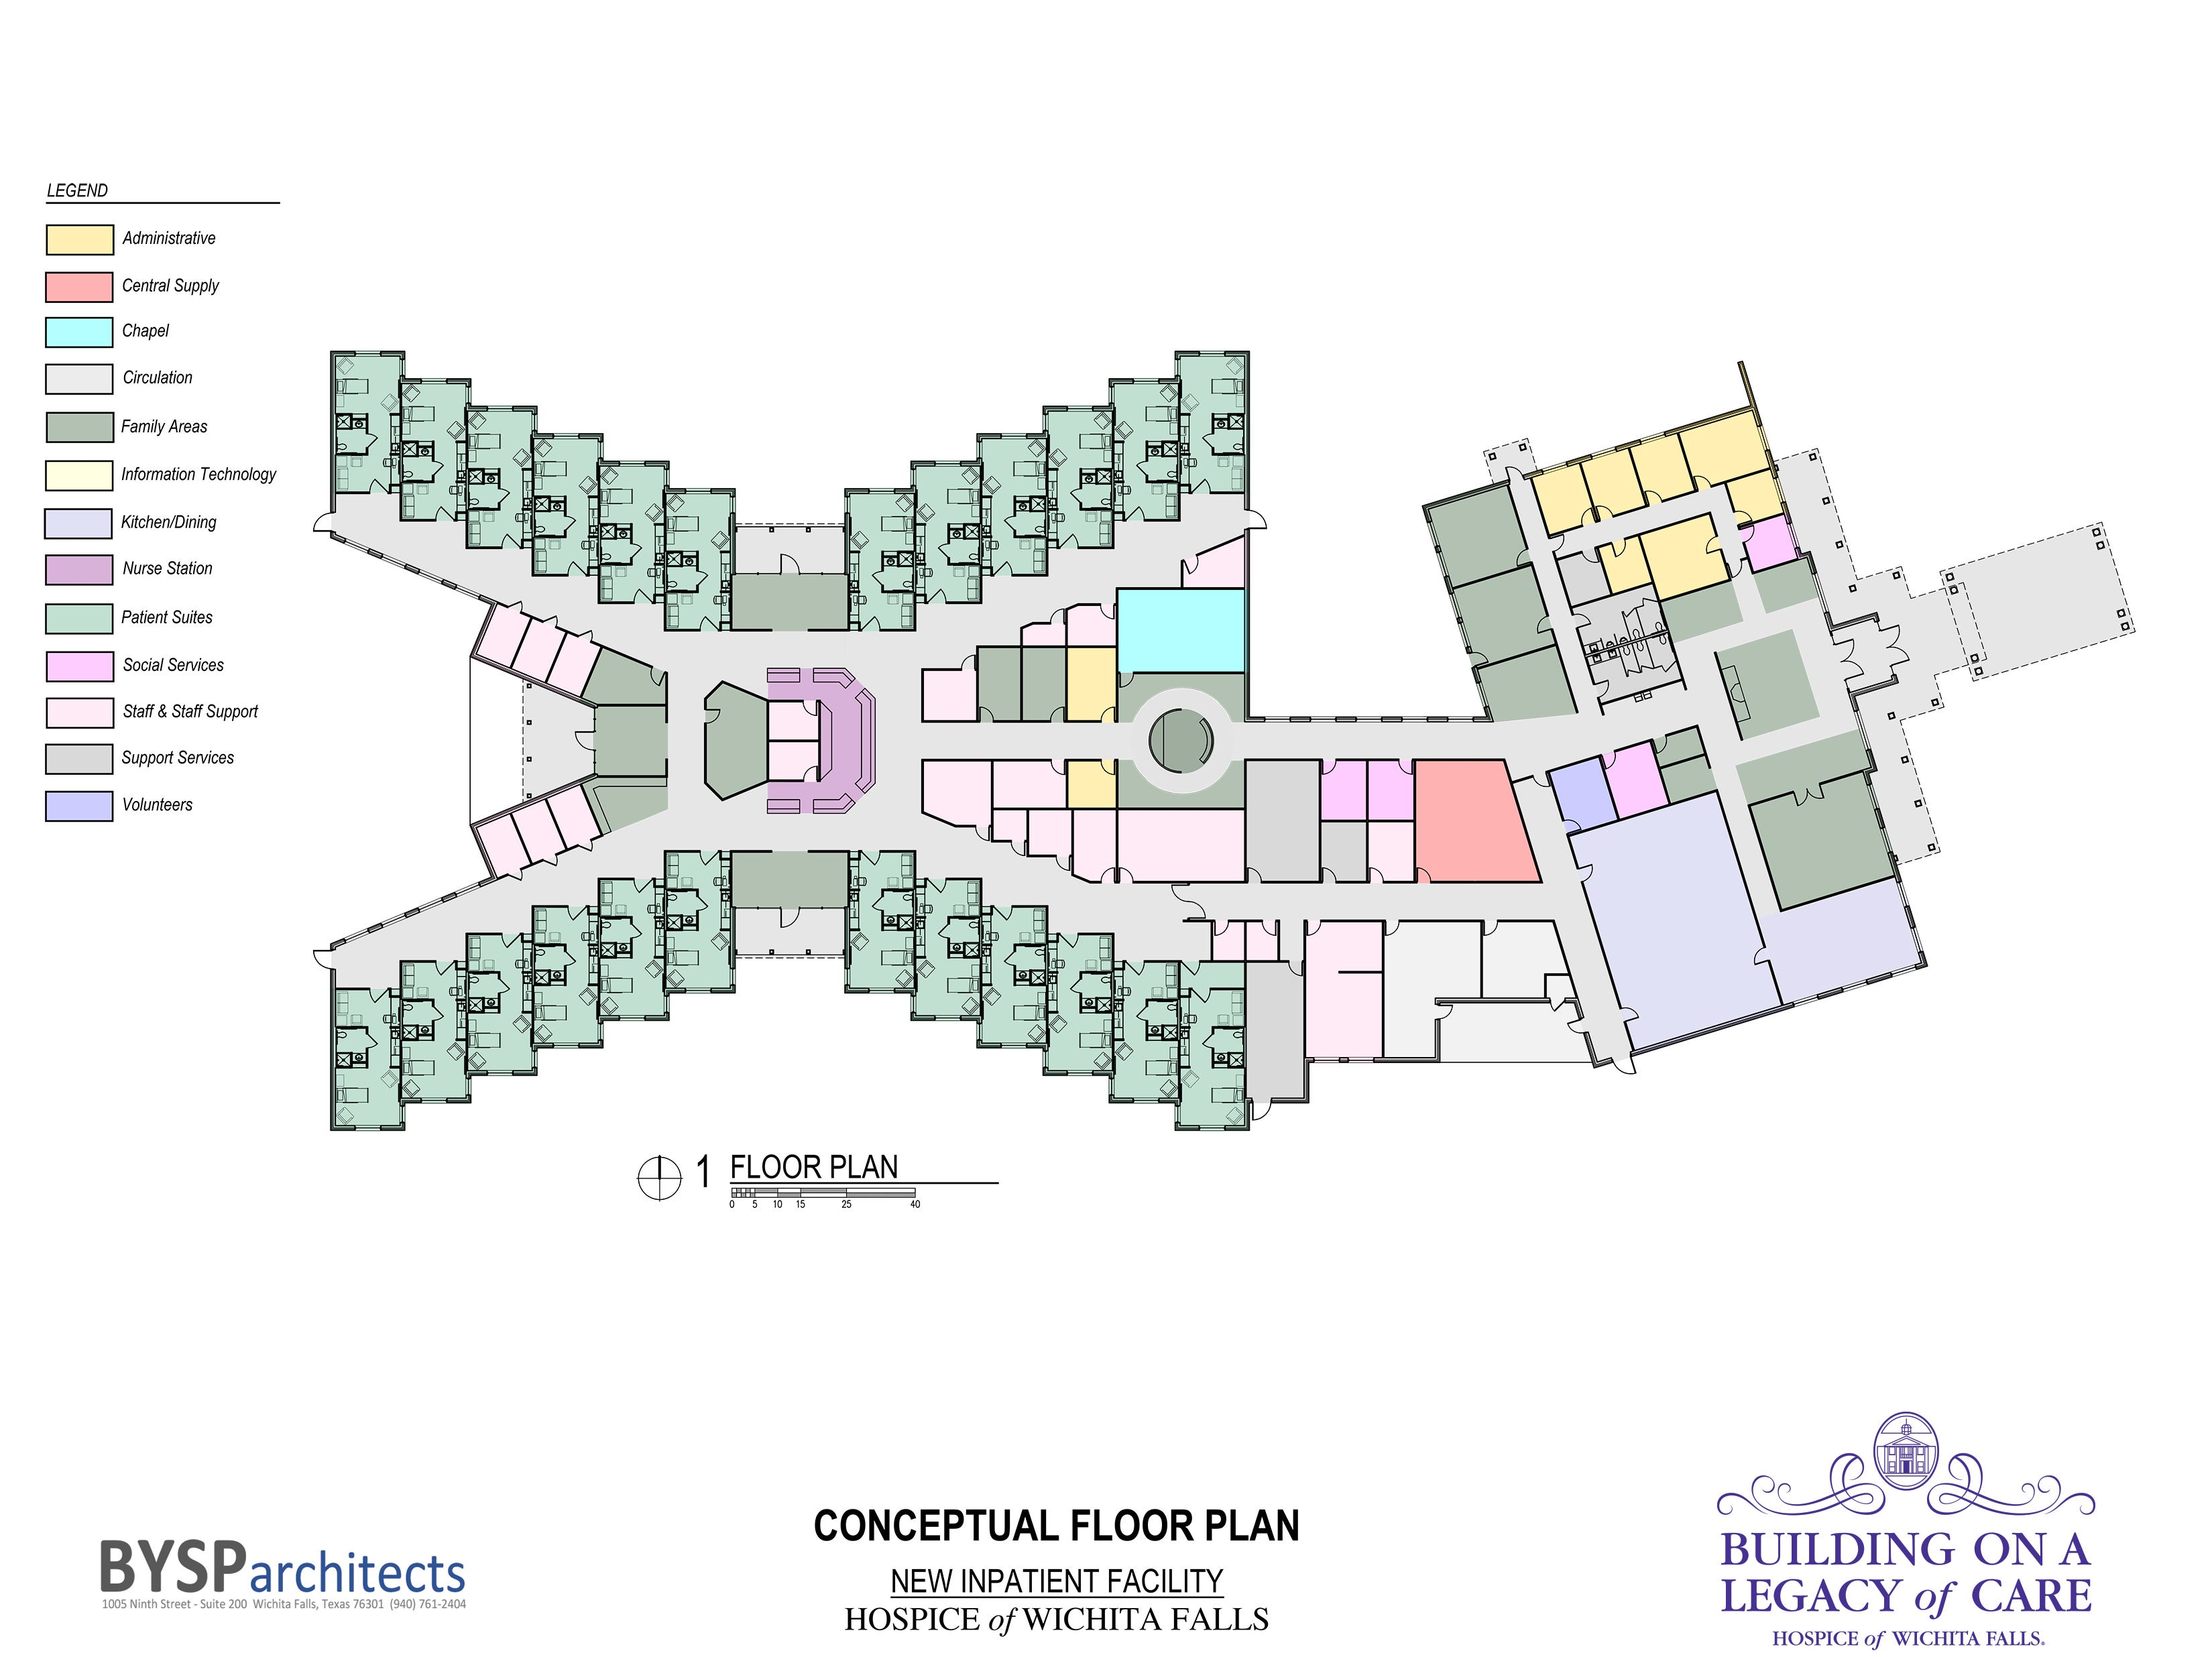 As illustrated in the conceptual floor plan for the planned Hospice of Wichita Falls inpatient facility, the new construction will have 24 inpatient rooms, a chapel, family areas, including children's rooms and a cafe, and meeting rooms.  Ground will be broken when the $15 million capital campaign reaches 100 percent. The facility will be located on Cypress Avenue, across from Rider High School.